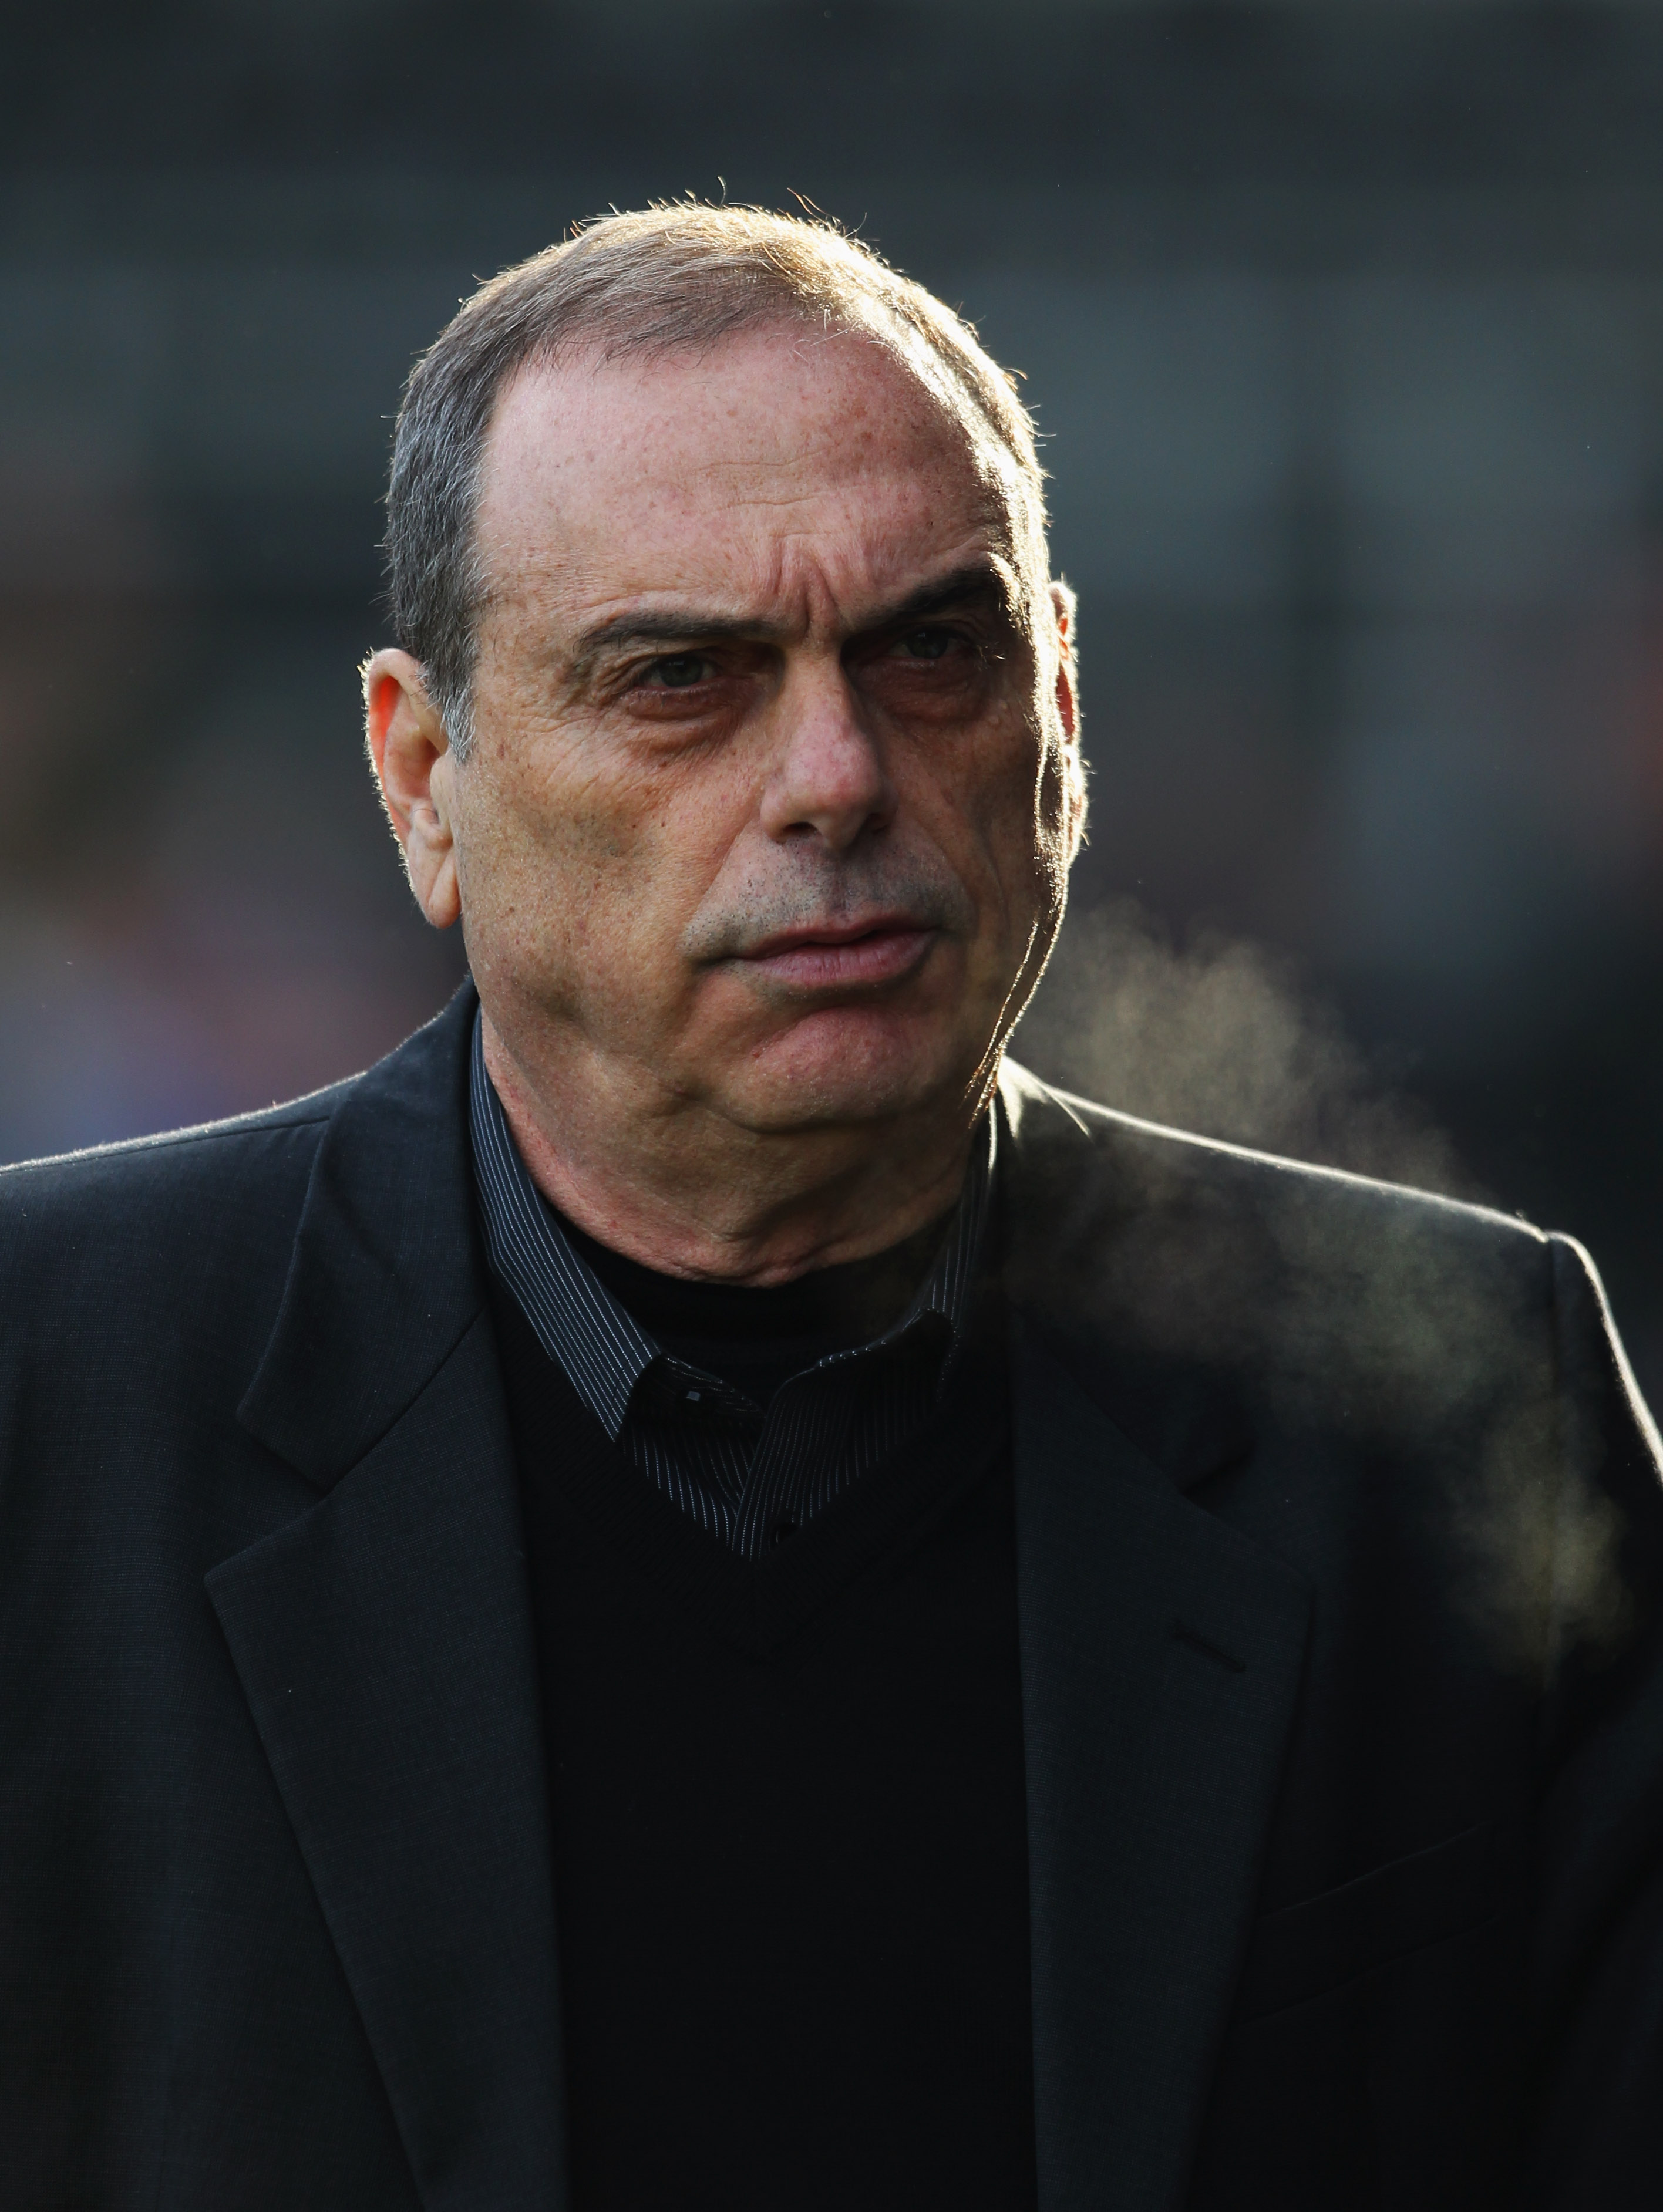 LONDON, ENGLAND - DECEMBER 26:  Avram Grant manager of West Ham United looks thoughtful prior to the Barclays Premier League match between Fulham and West Ham United at Craven Cottage on December 26, 2010 in London, England.  (Photo by Clive Rose/Getty Im